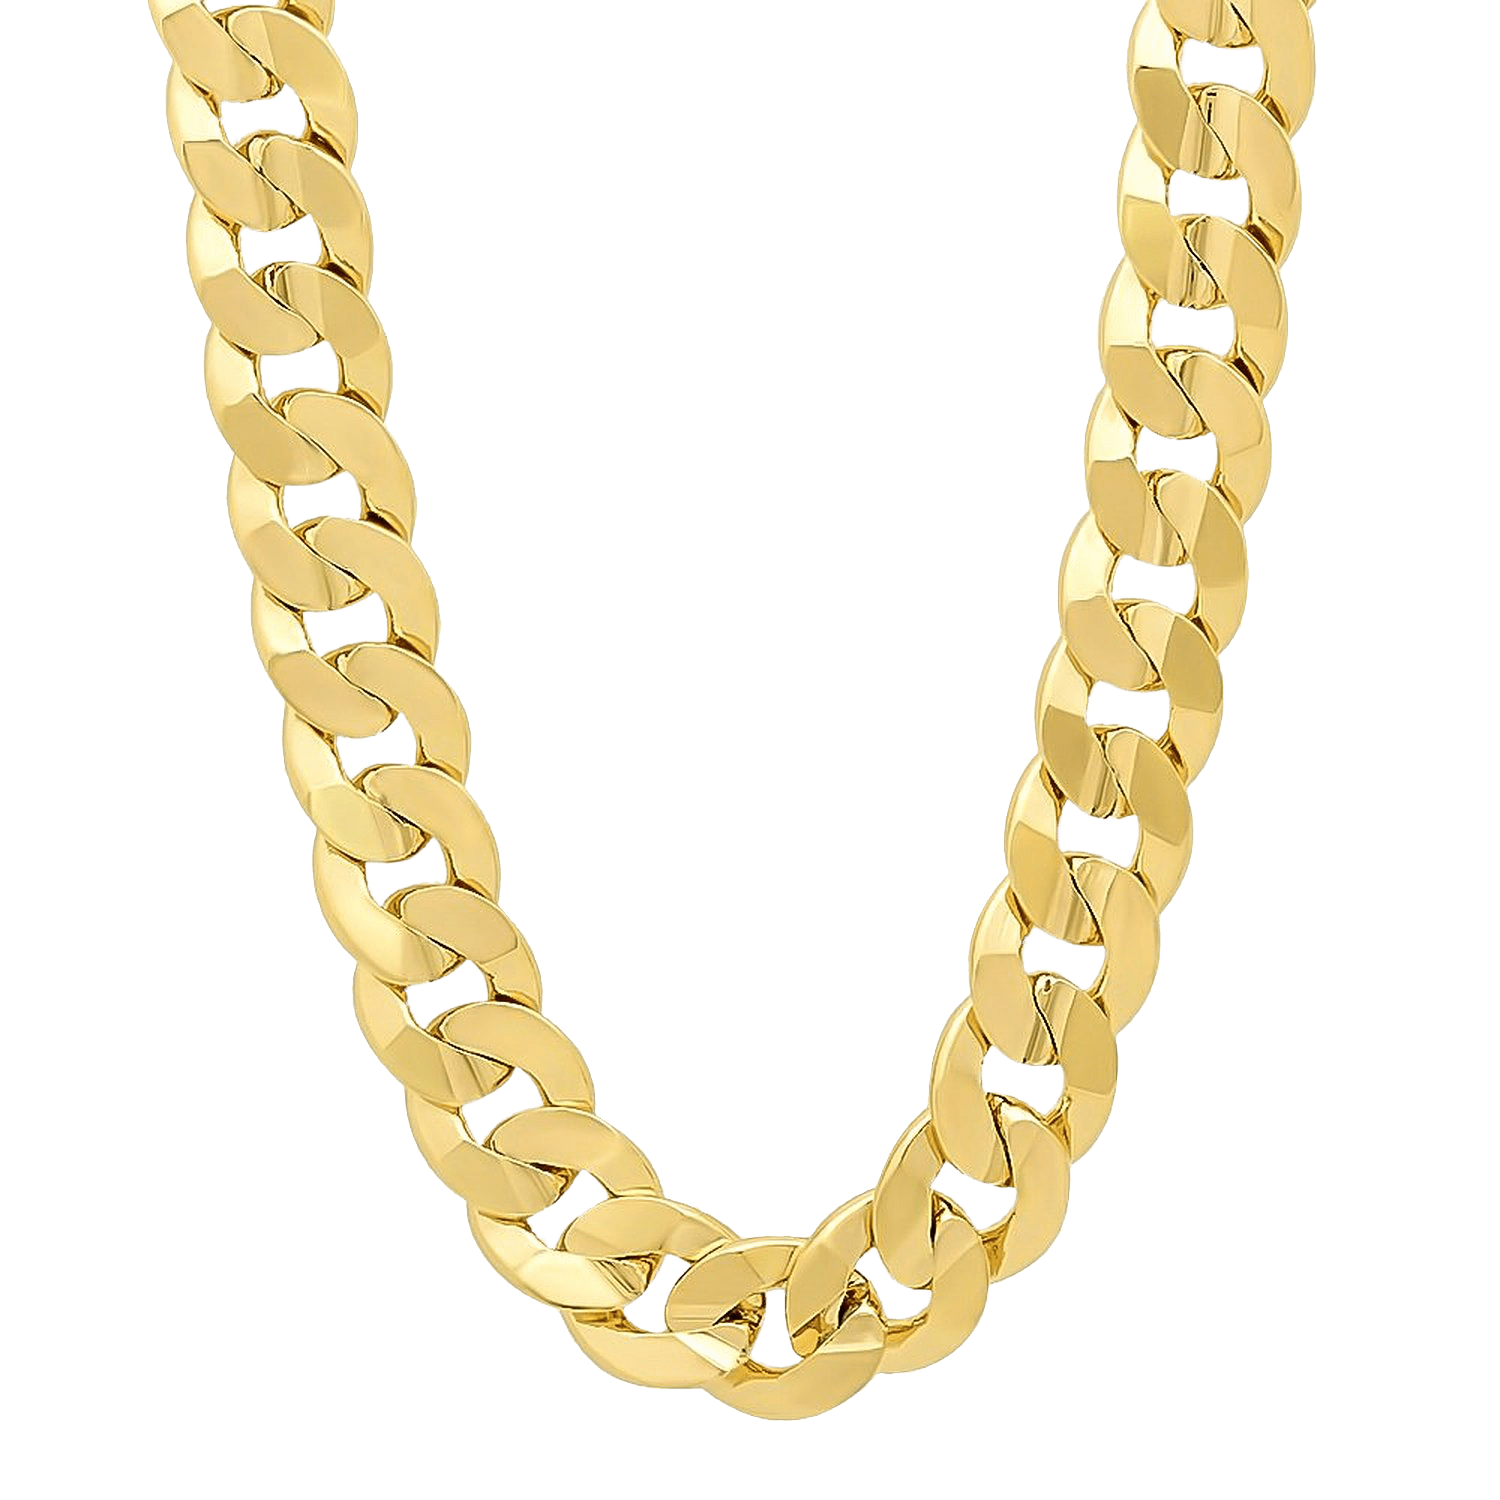 Life heavy gold transparent. Chain clipart thug